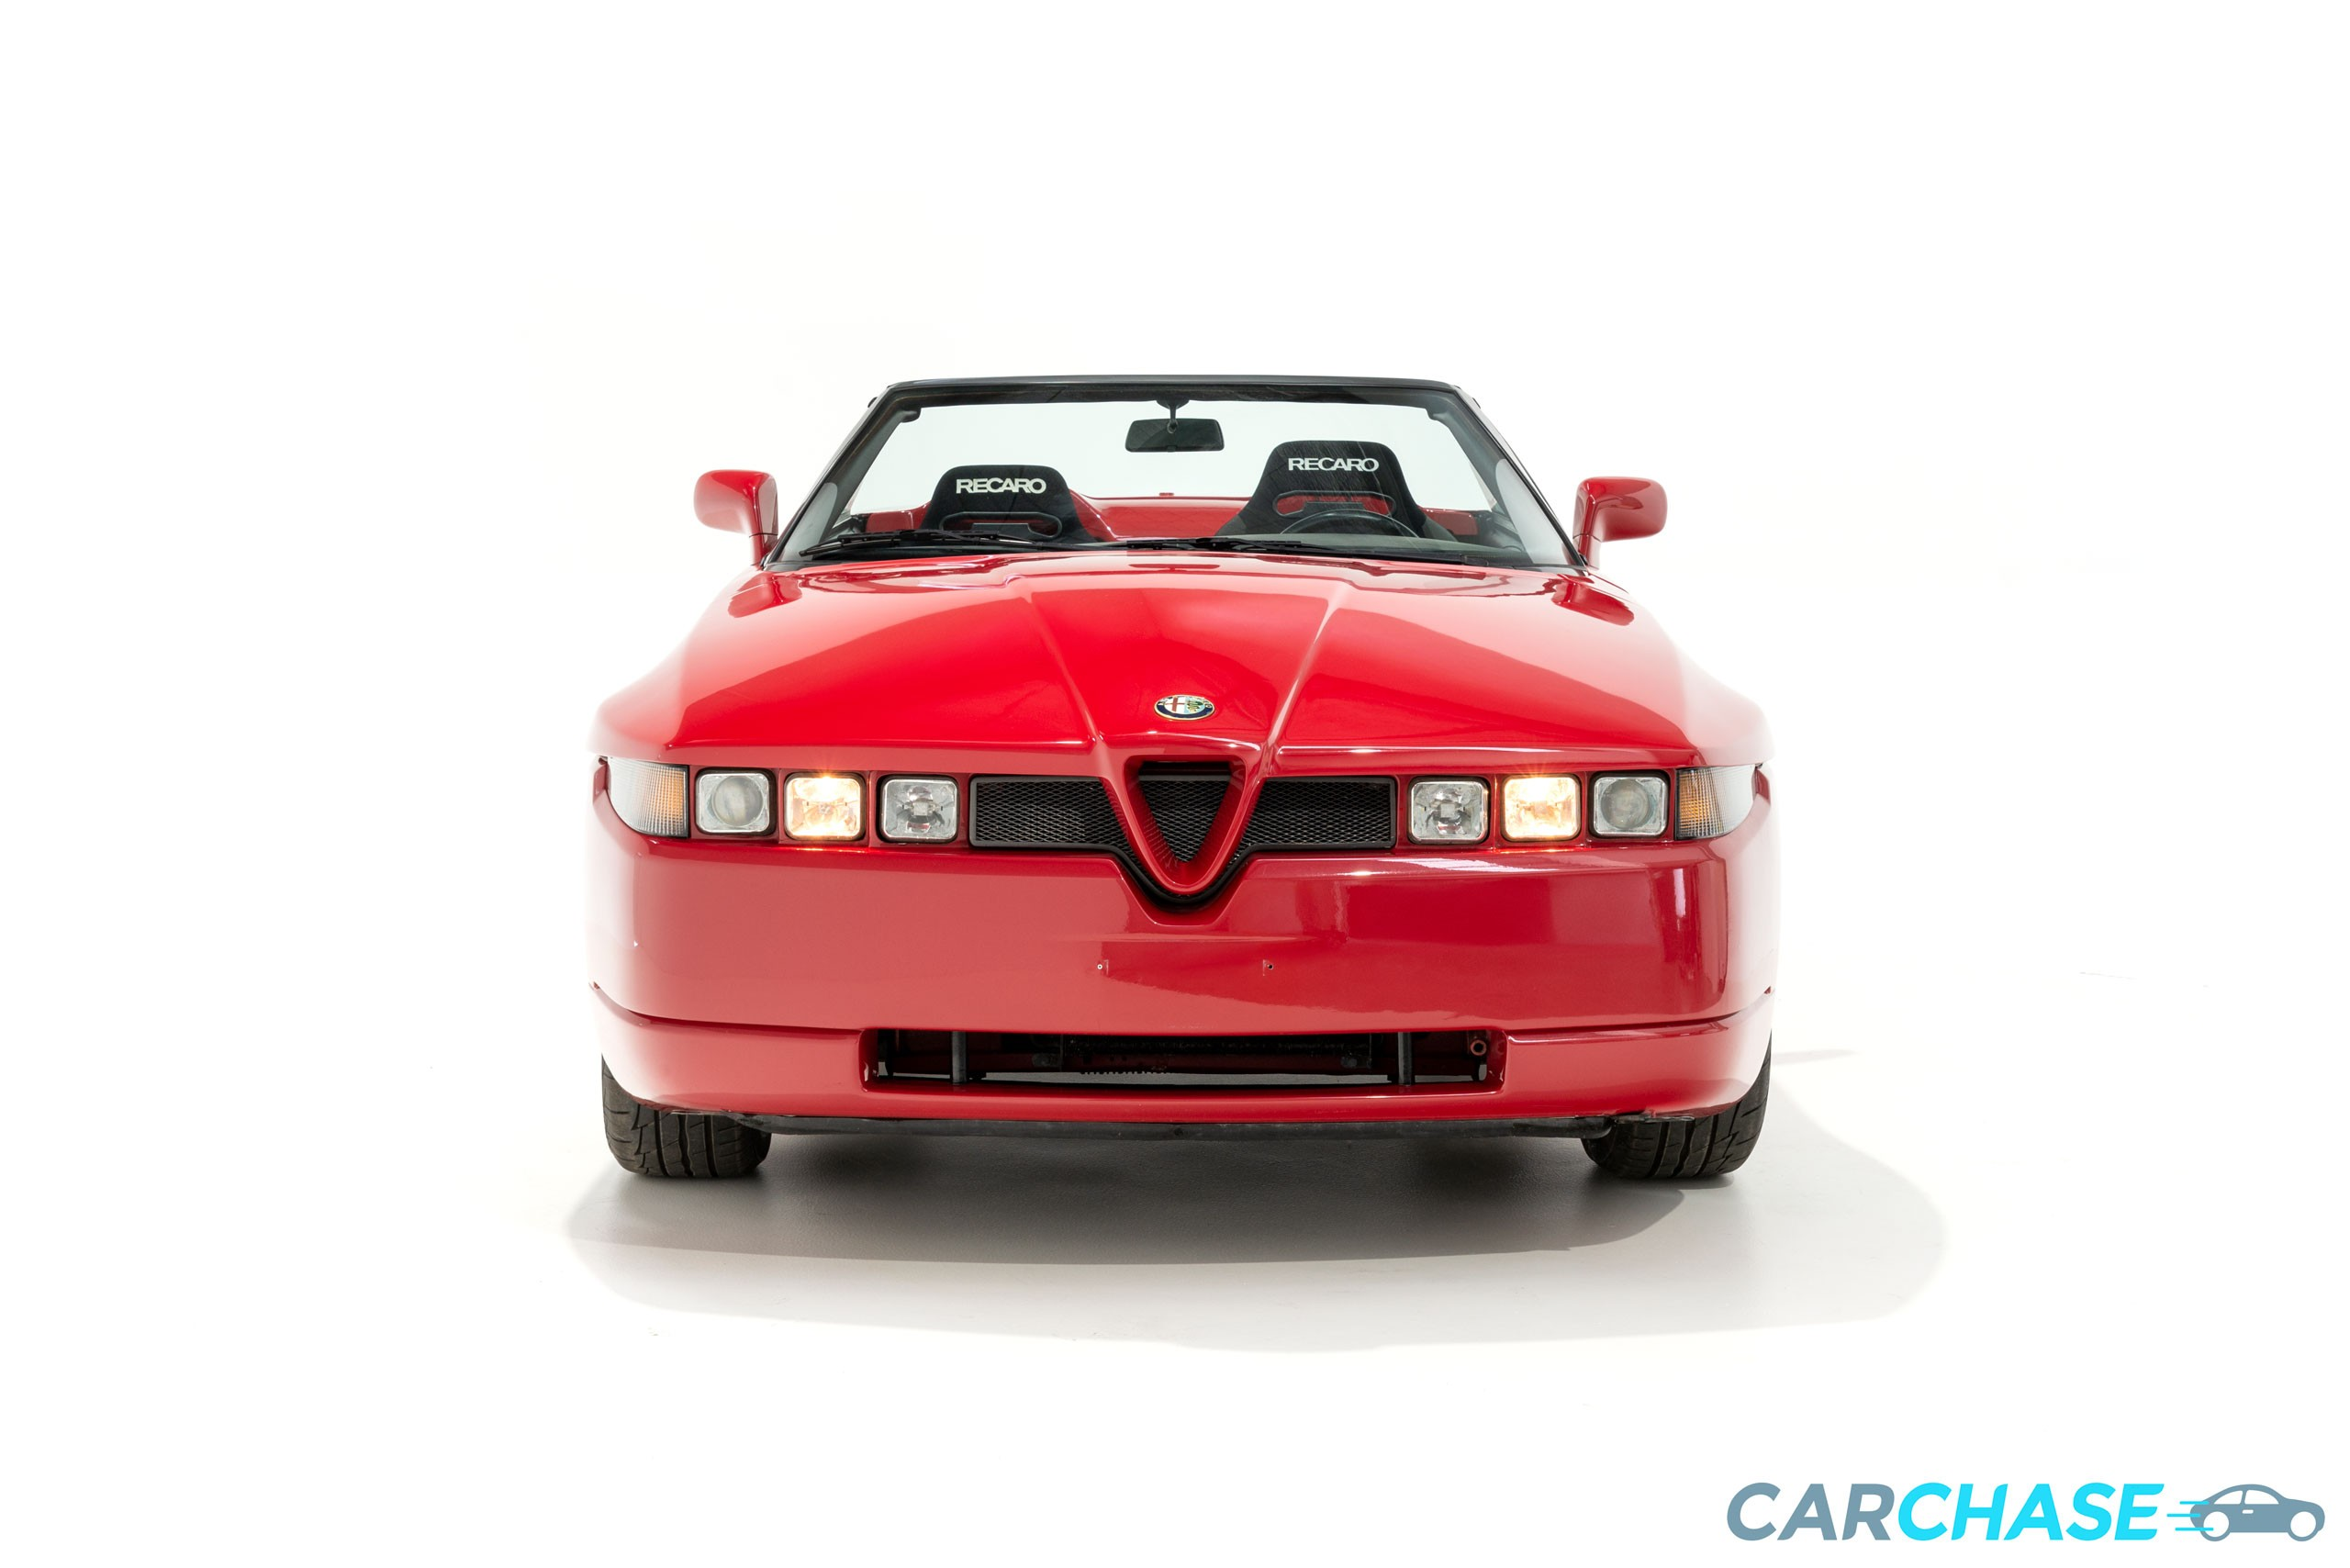 Image of front profile of 1993 Alfa Romeo Zagato RZ